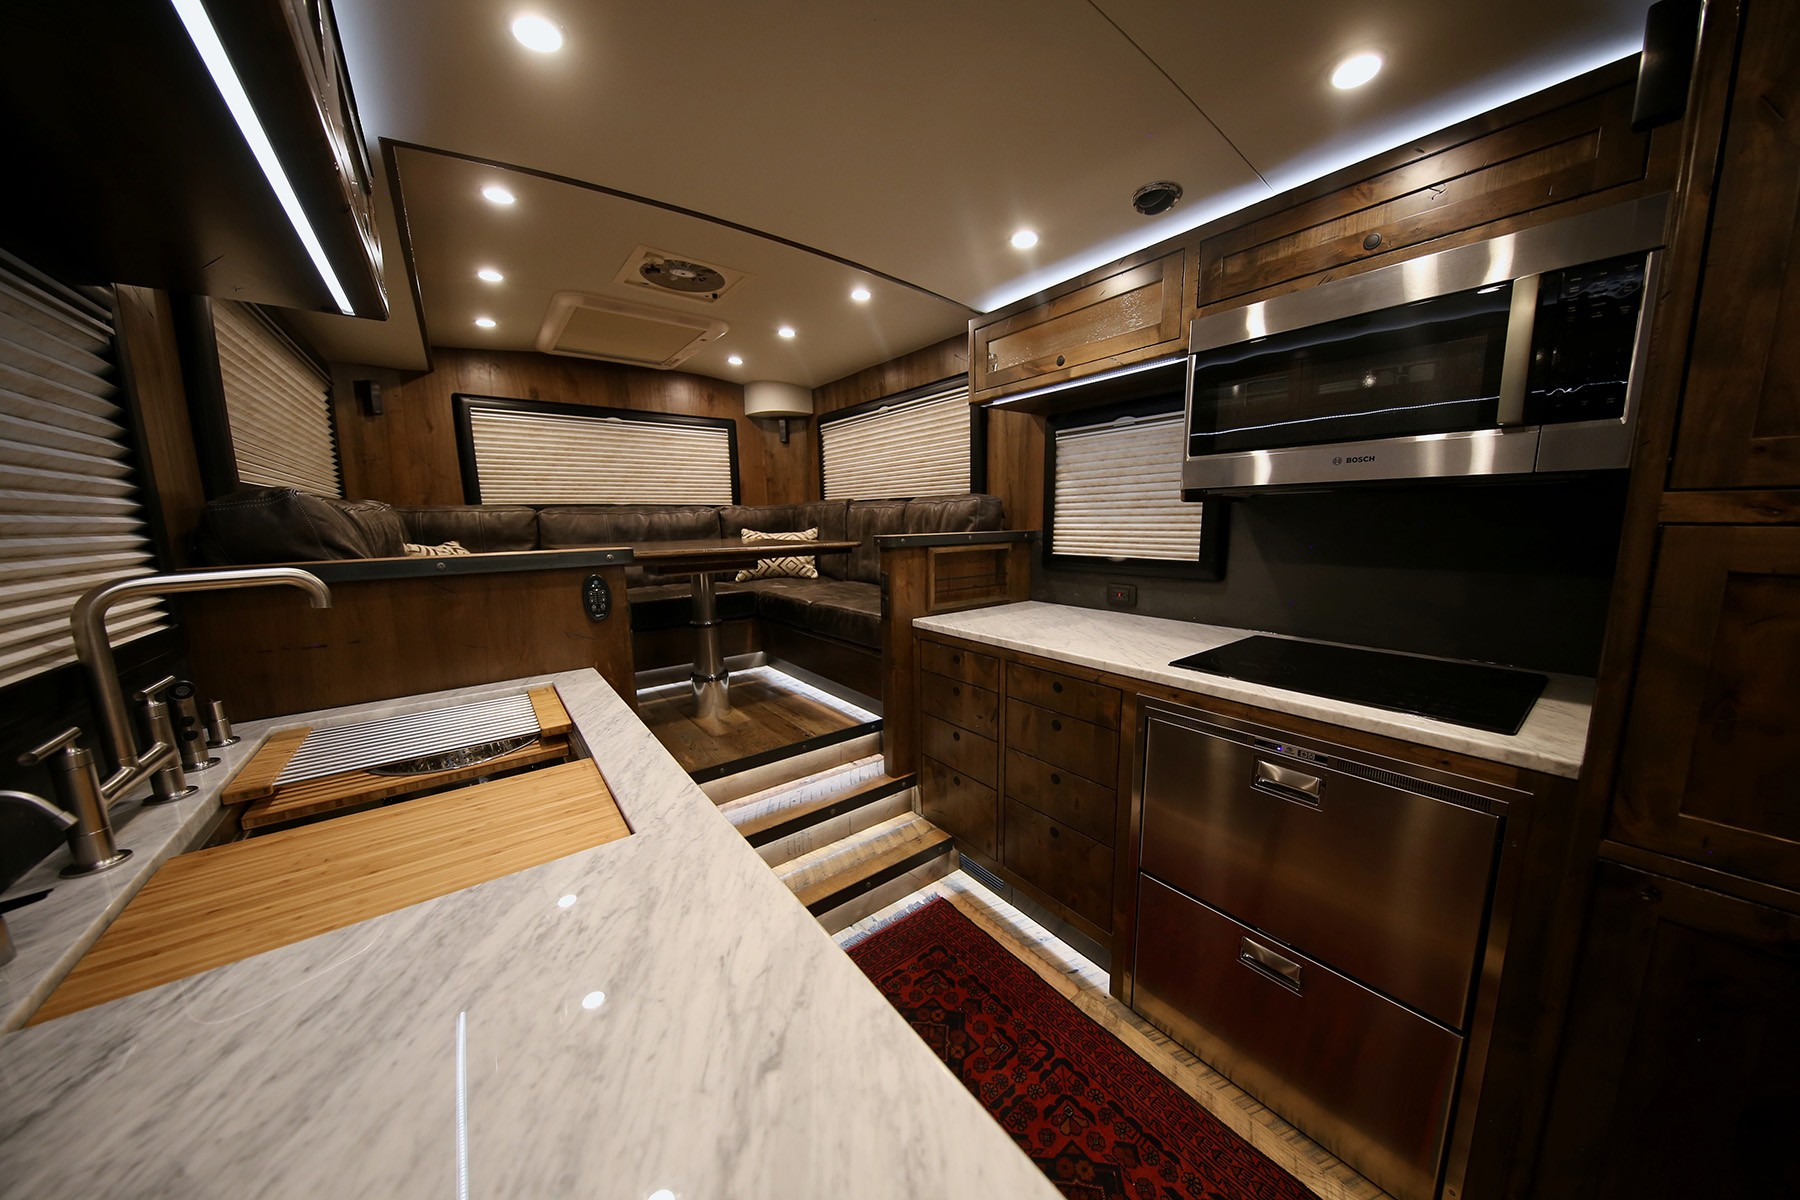 Take a Look Inside These $1 Million Luxury RVs That Are